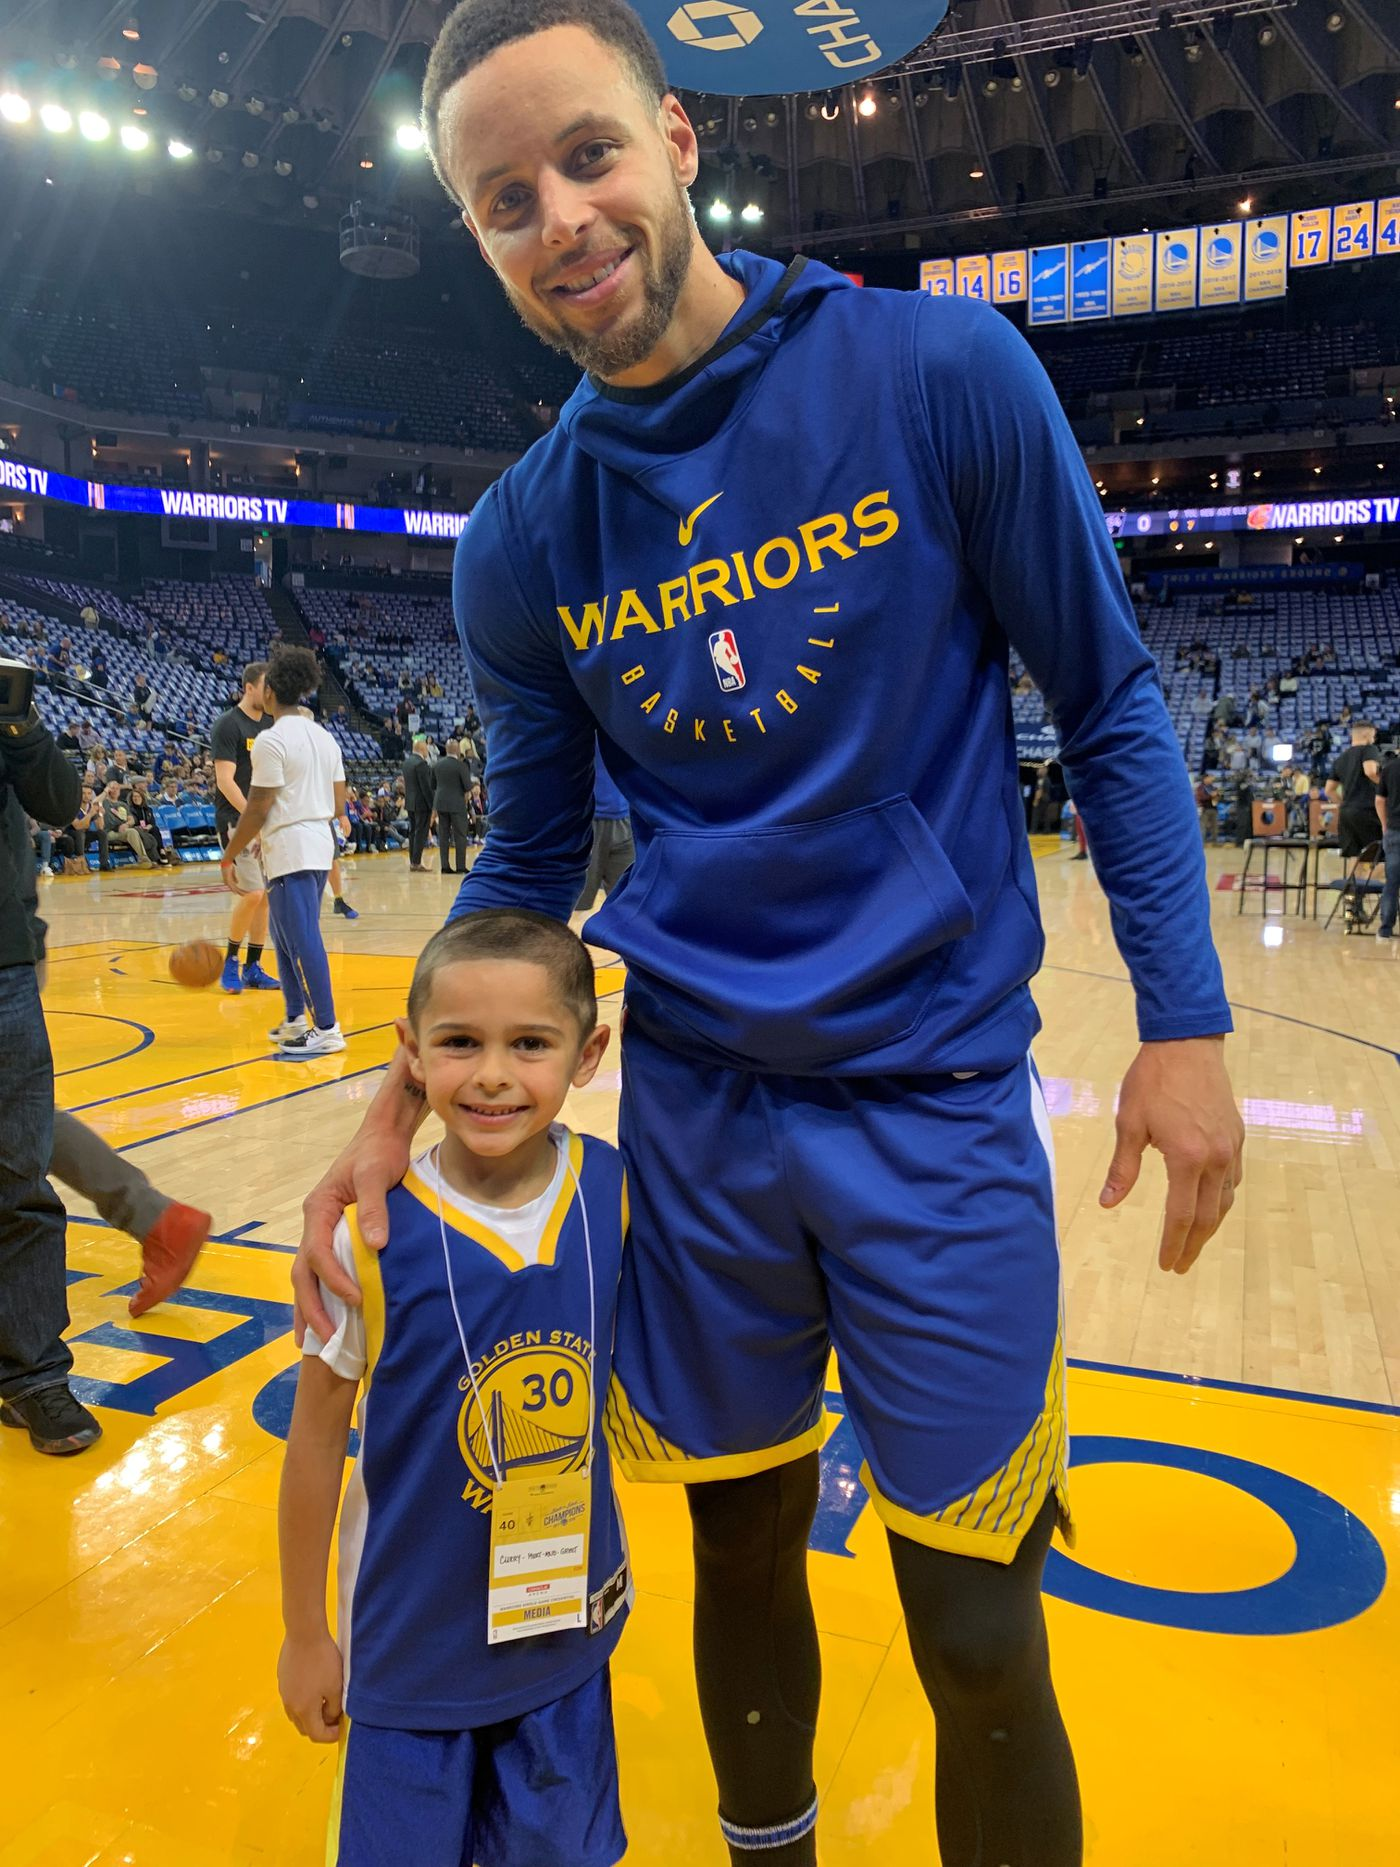 newest 1f261 e5428 Super good': RVA's Baby Steph meets real Steph Curry